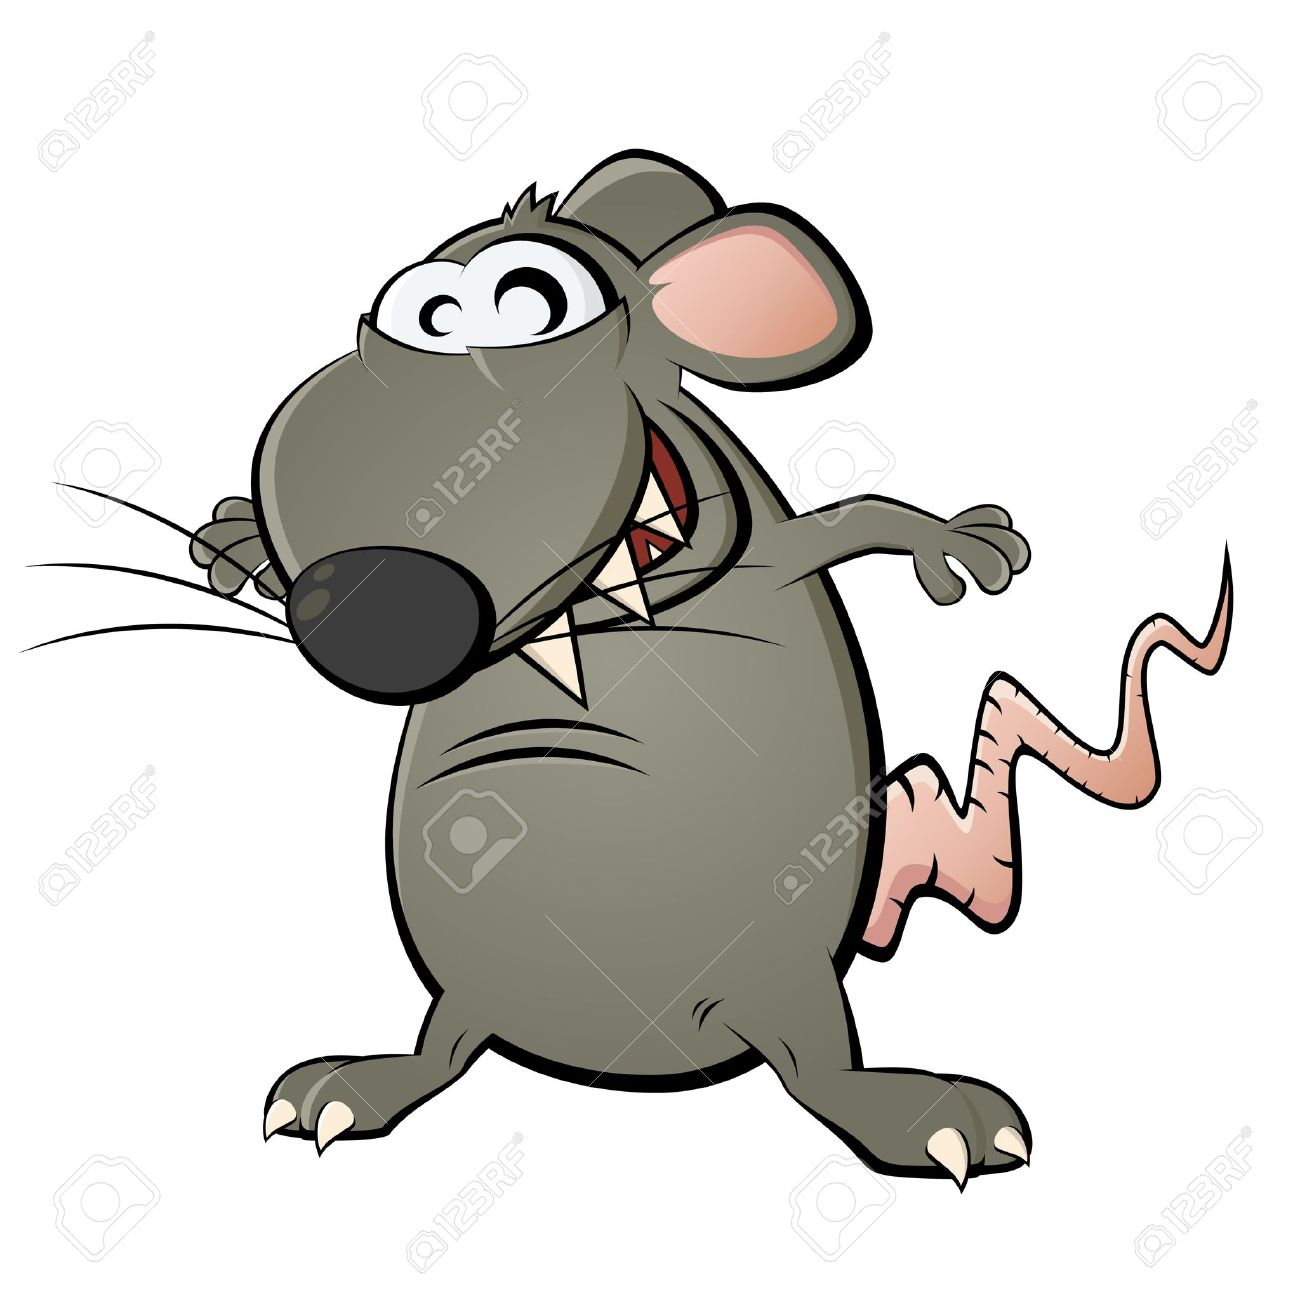 Funny Cartoon Rat Royalty Free Cliparts, Vectors, And Stock.